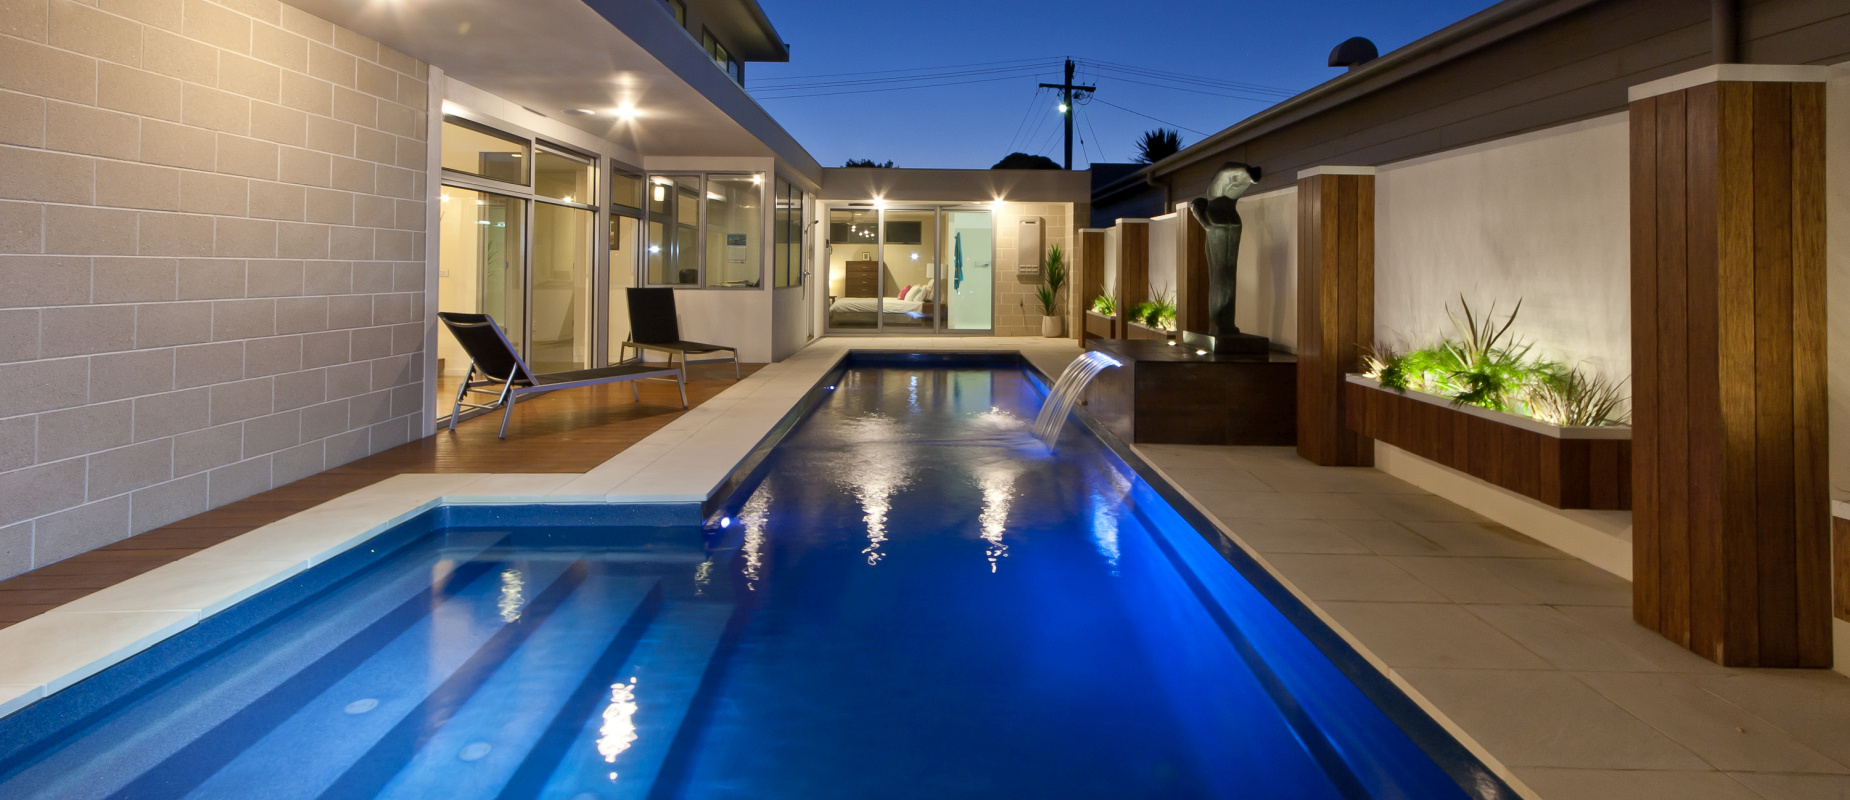 Fastlane Swimming Pool - for Serious Swimmers | Compass Pools